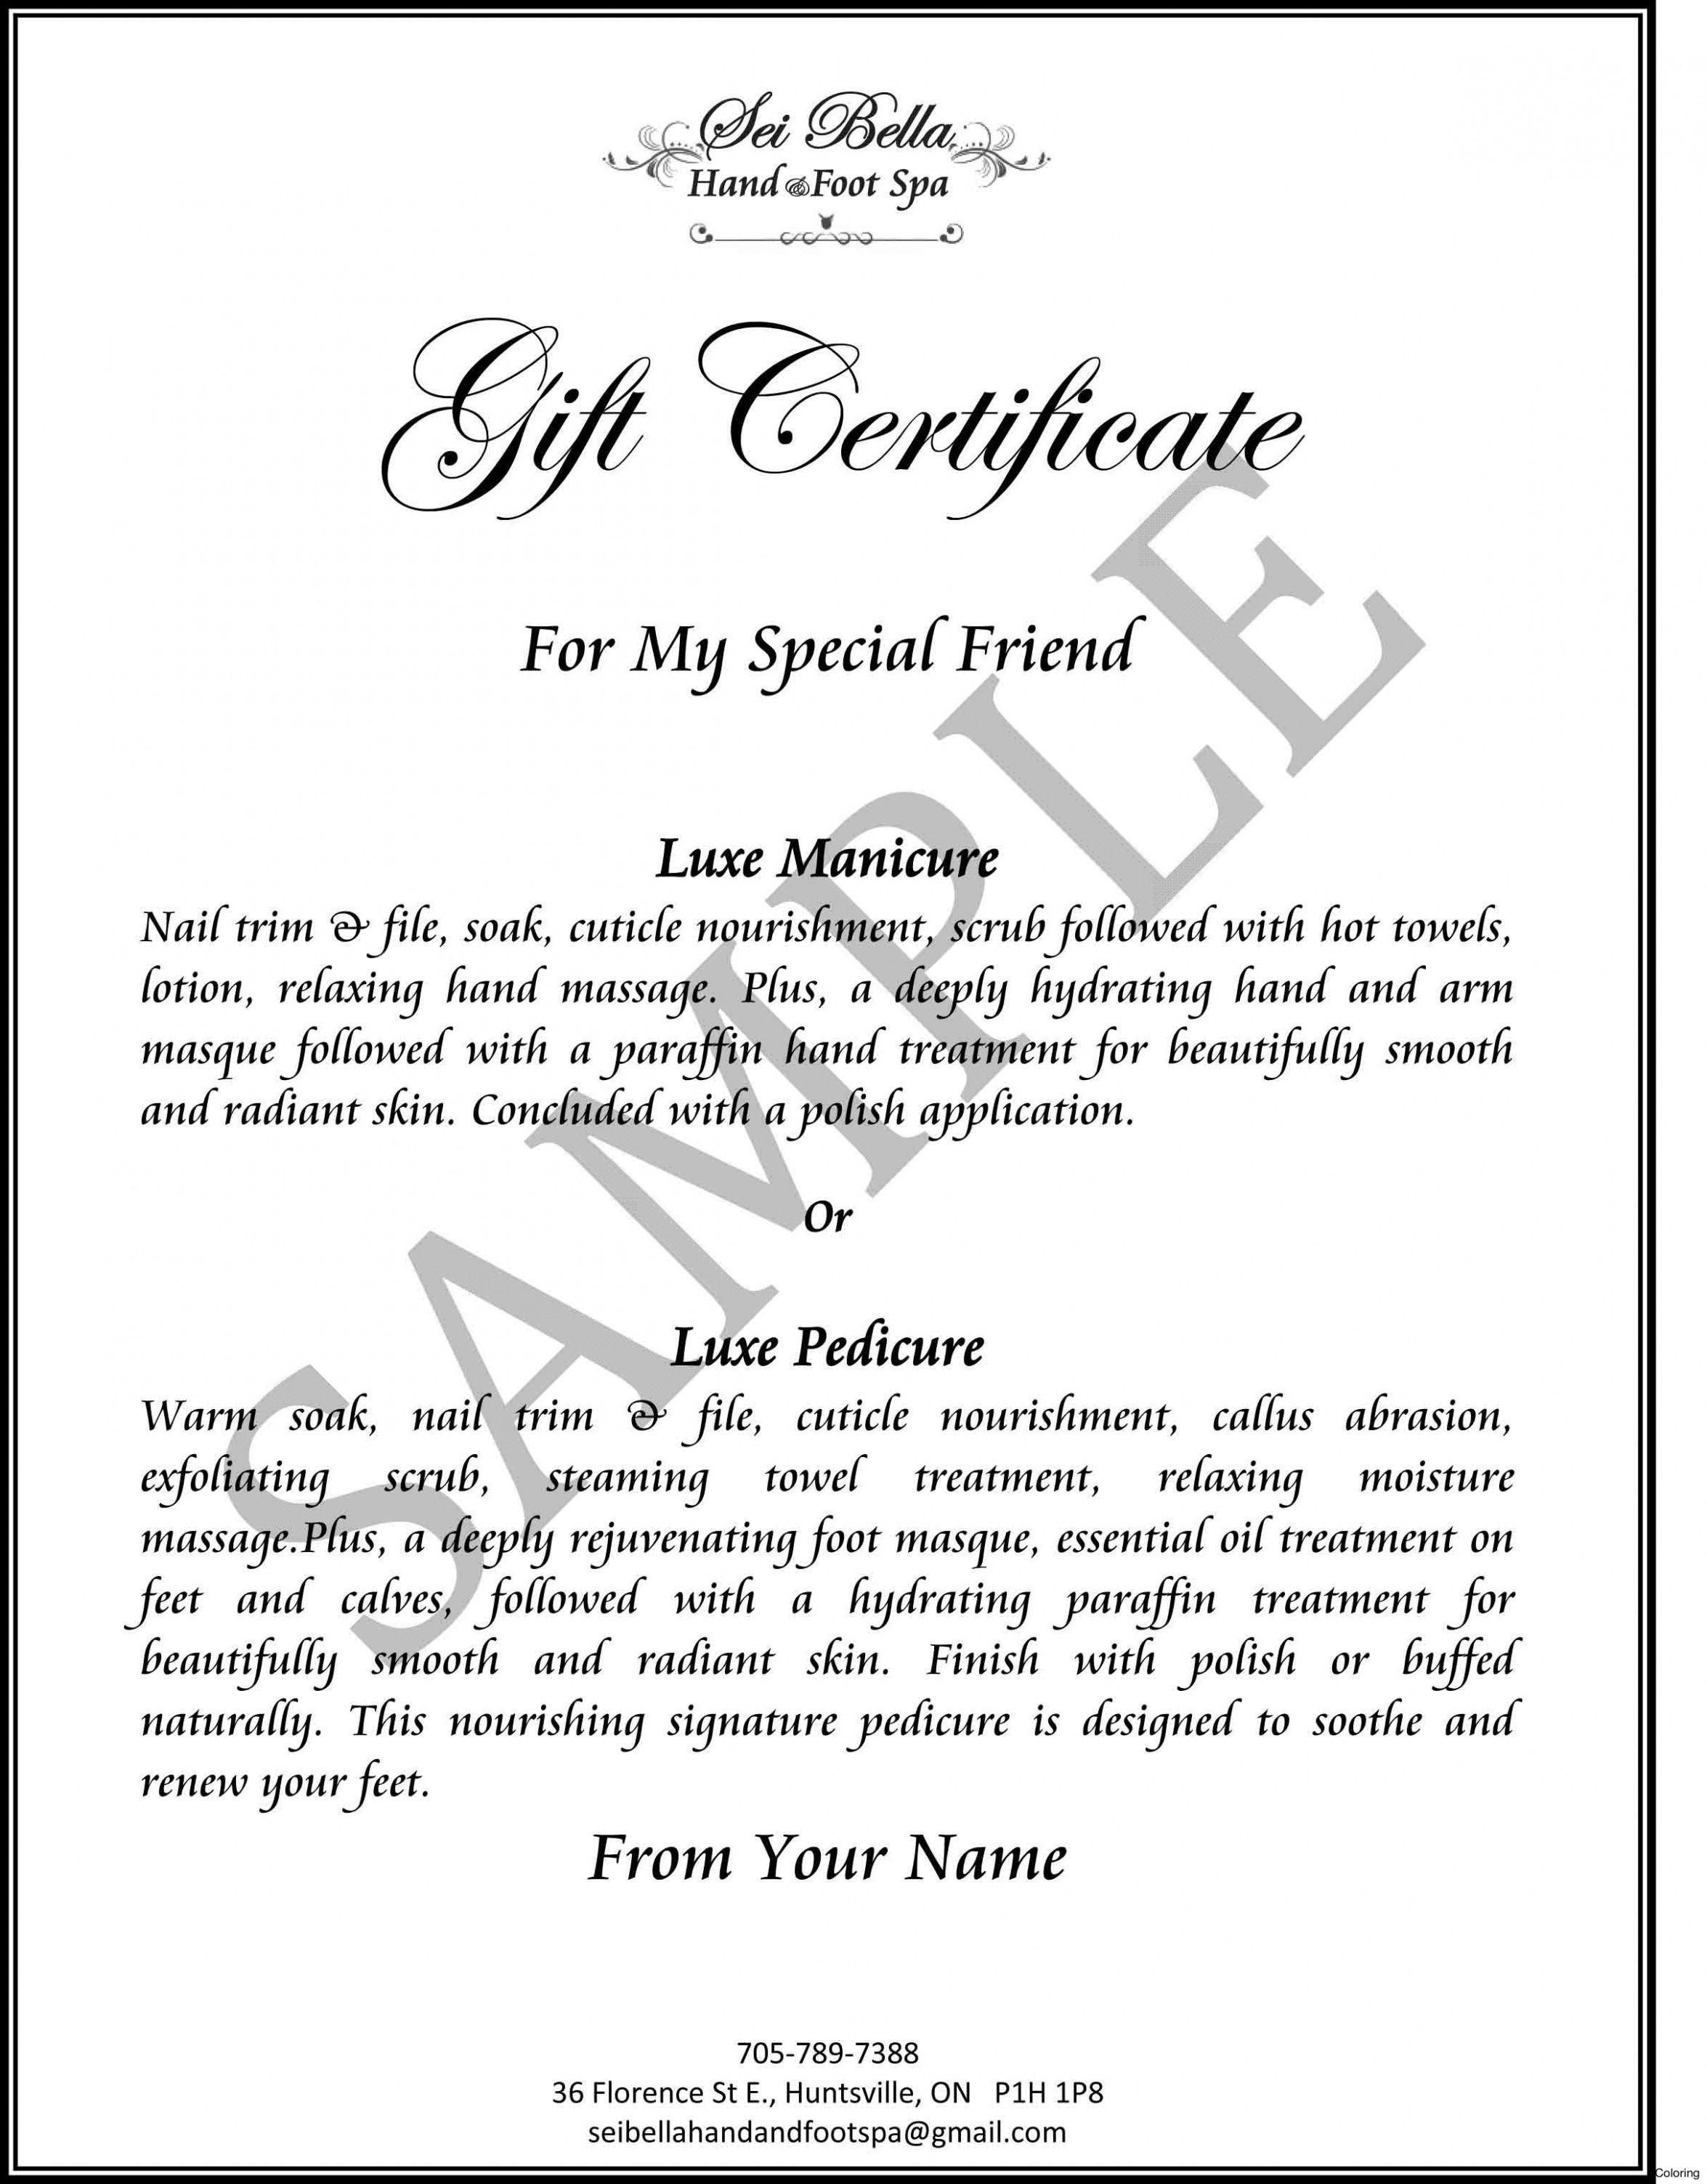 007 Formidable Silent Auction Donation Certificate Template Concept Full